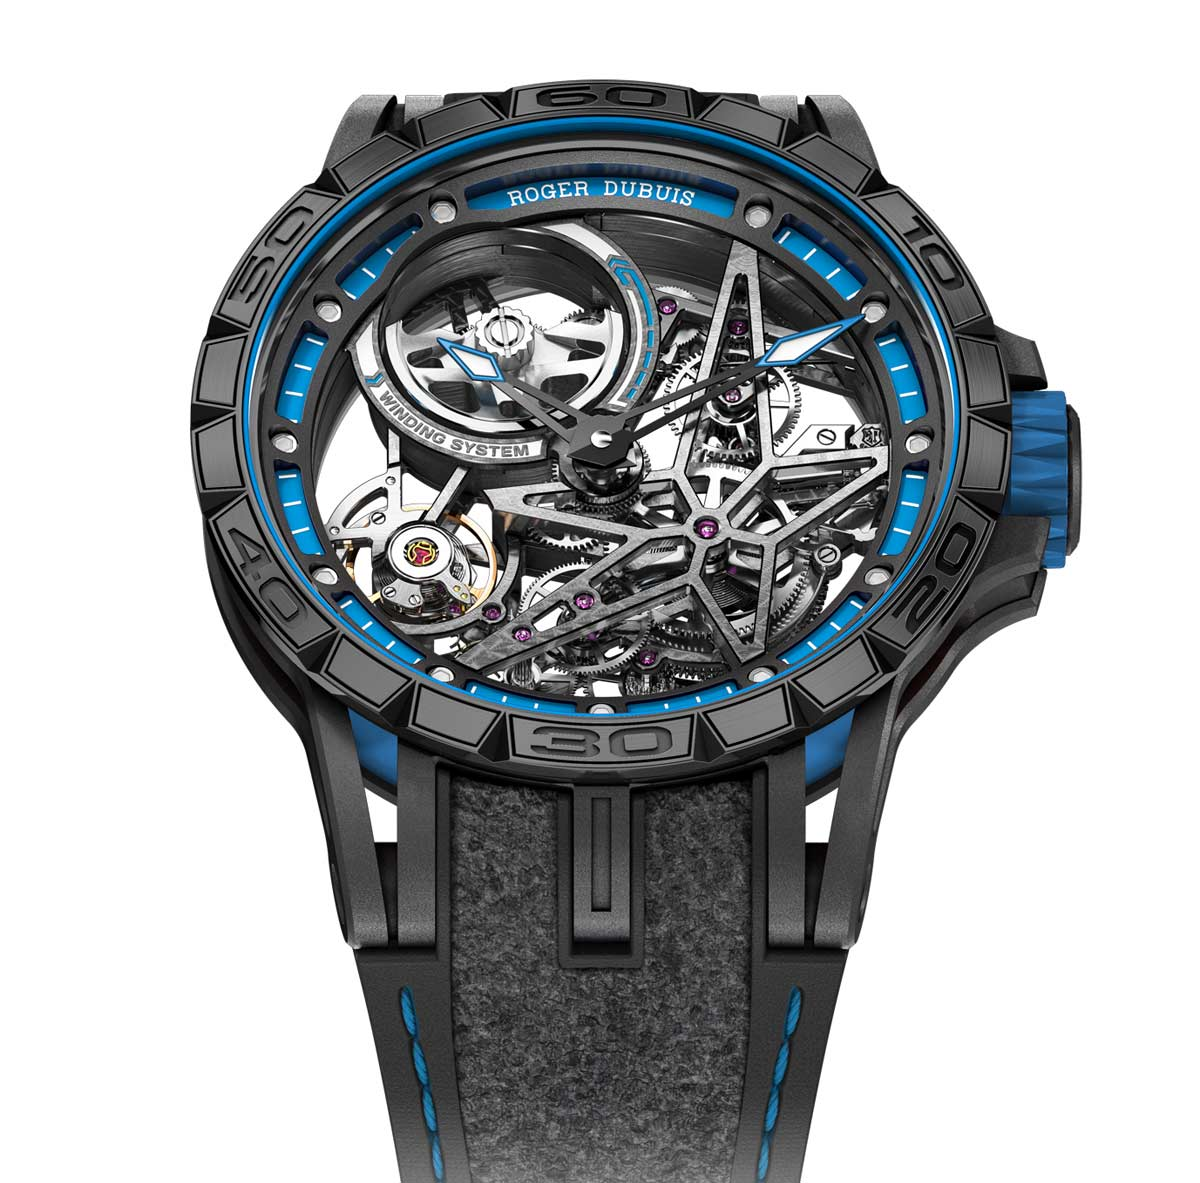 SIHH 2017: Roger Dubuis